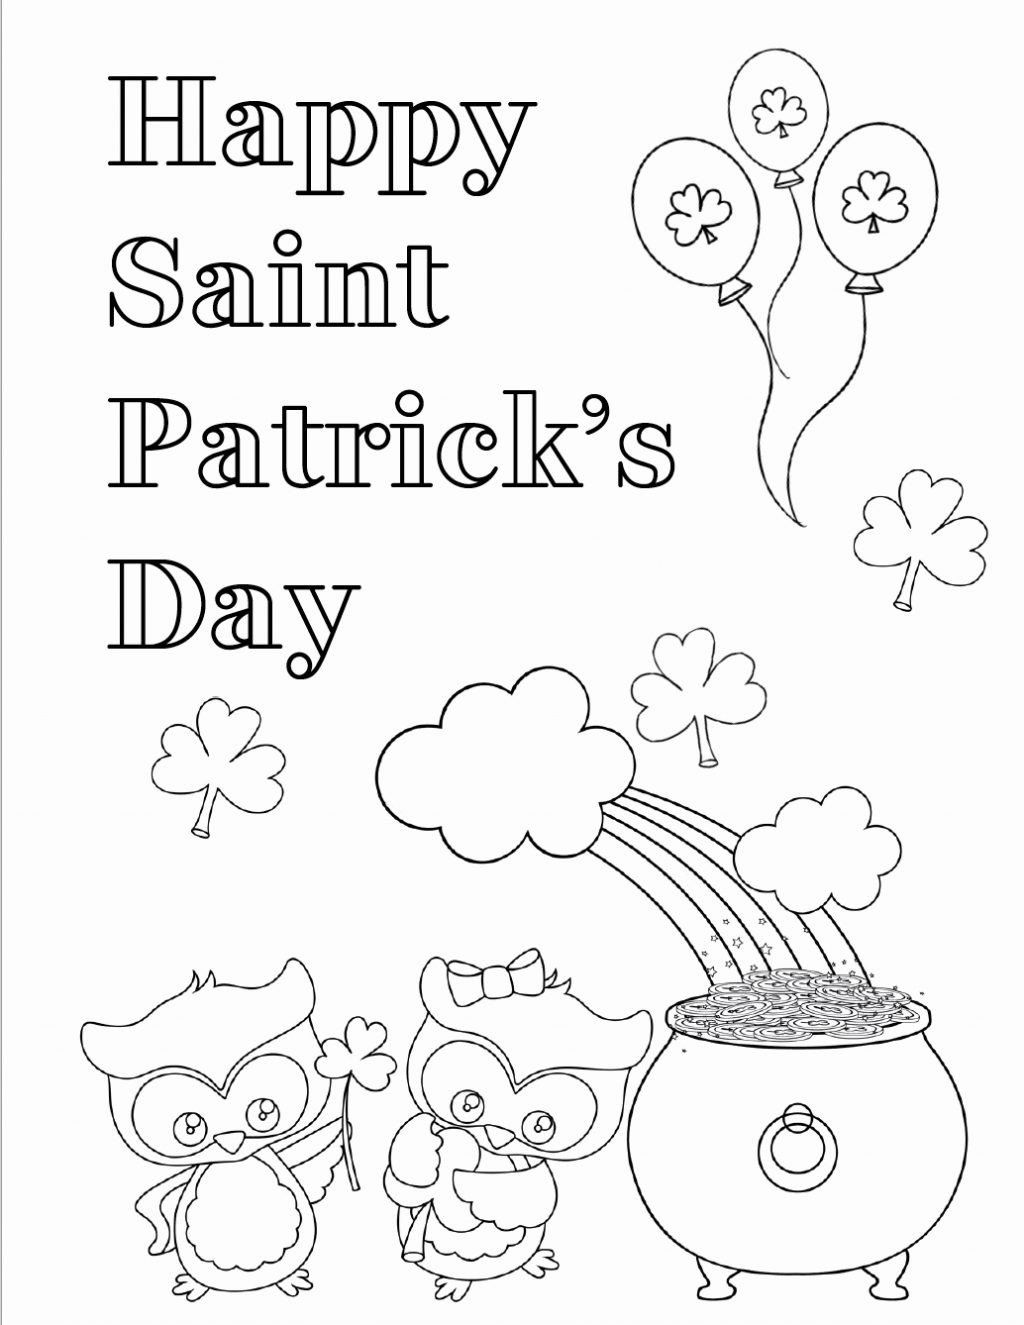 11+ Printable st patricks day coloring pages pdf ideas in 2021